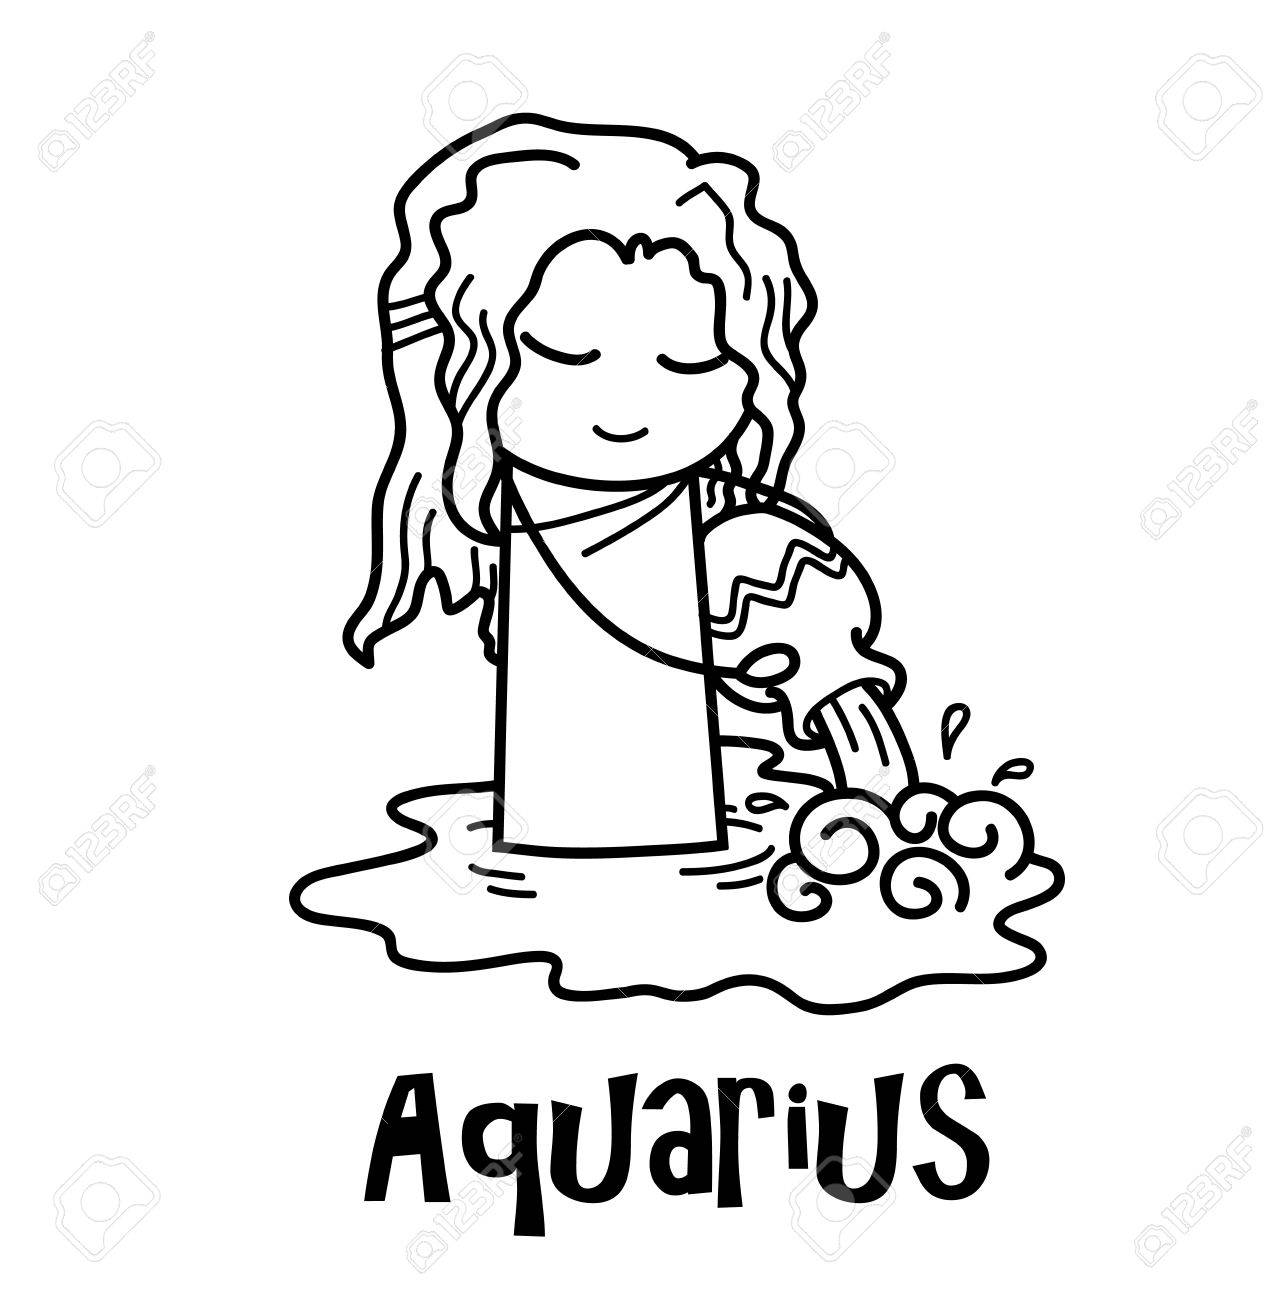 aquarius zodiac a hand drawn vector cartoon illustration of